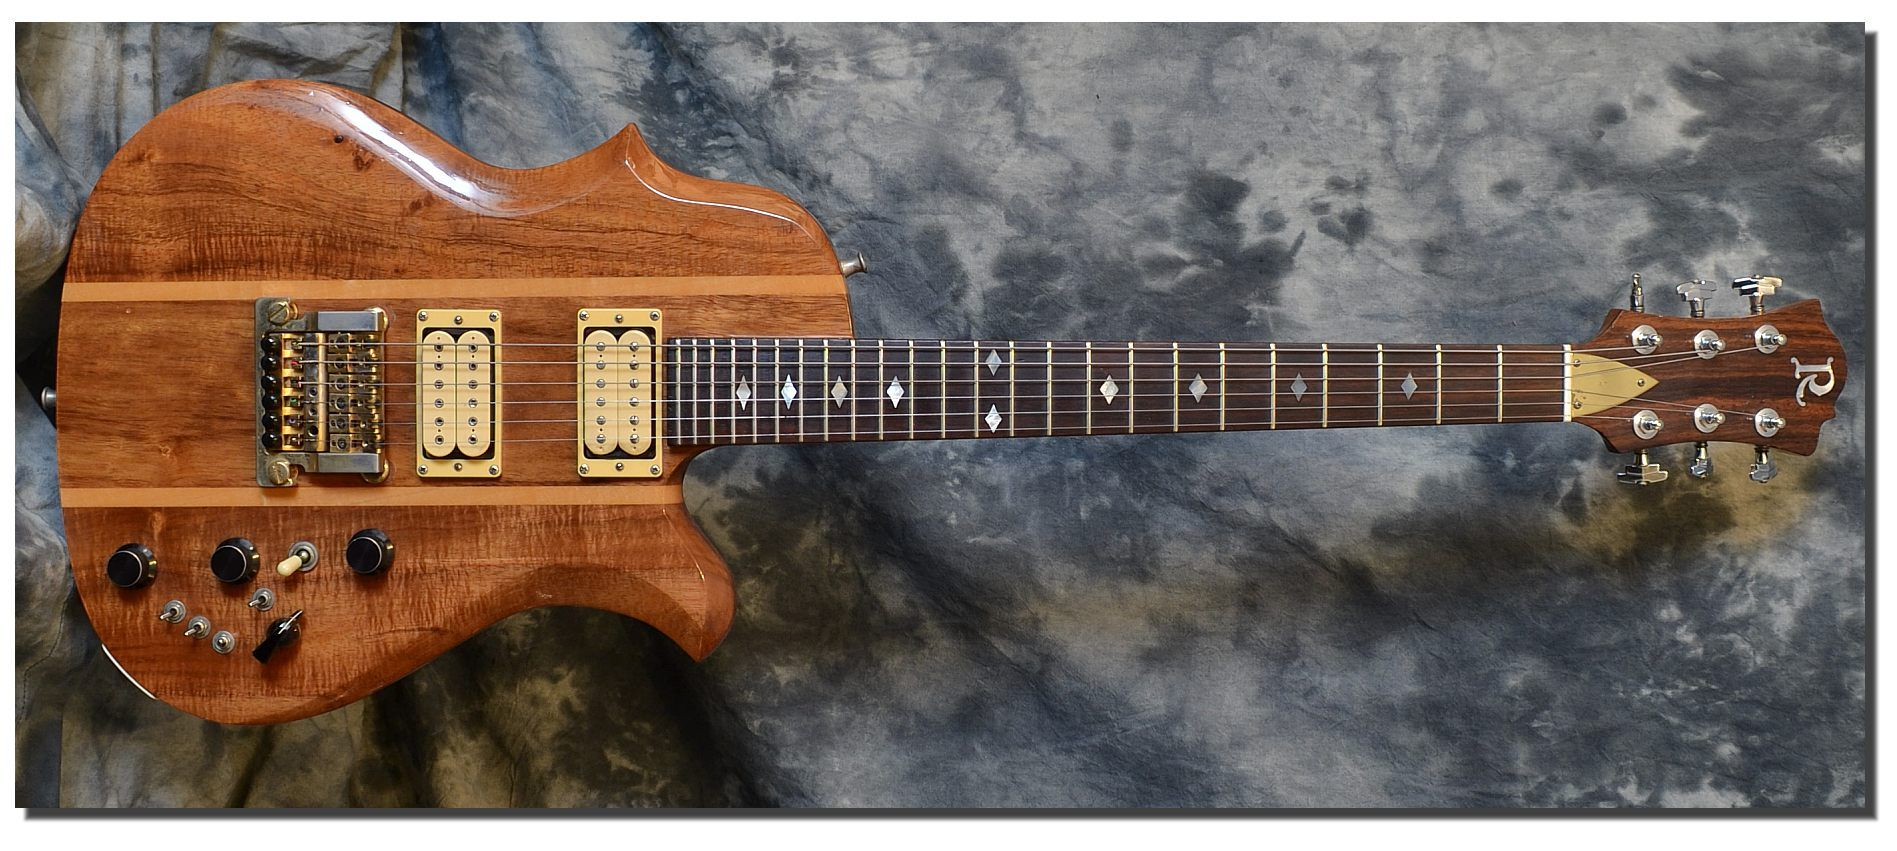 0fc1b67872fa1677824b9bfeb2f14036 1980 bc rich seagull guitars pinterest guitars, bass and bc rich eagle wiring diagram at crackthecode.co